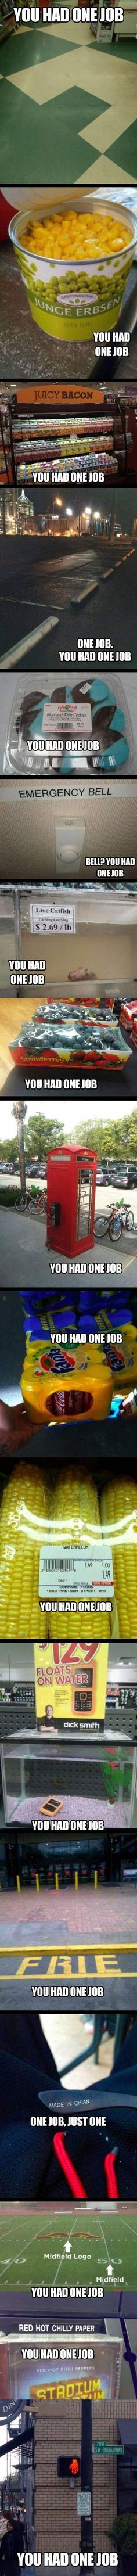 Funny pictures about You had one job. Oh, and cool pics about You had one job. Also, You had one job. Haha, Funny Memes, Jokes, Funny Fails, Job Memes, Job Humor, Funny Pranks, Funny Cartoons, Videos Funny